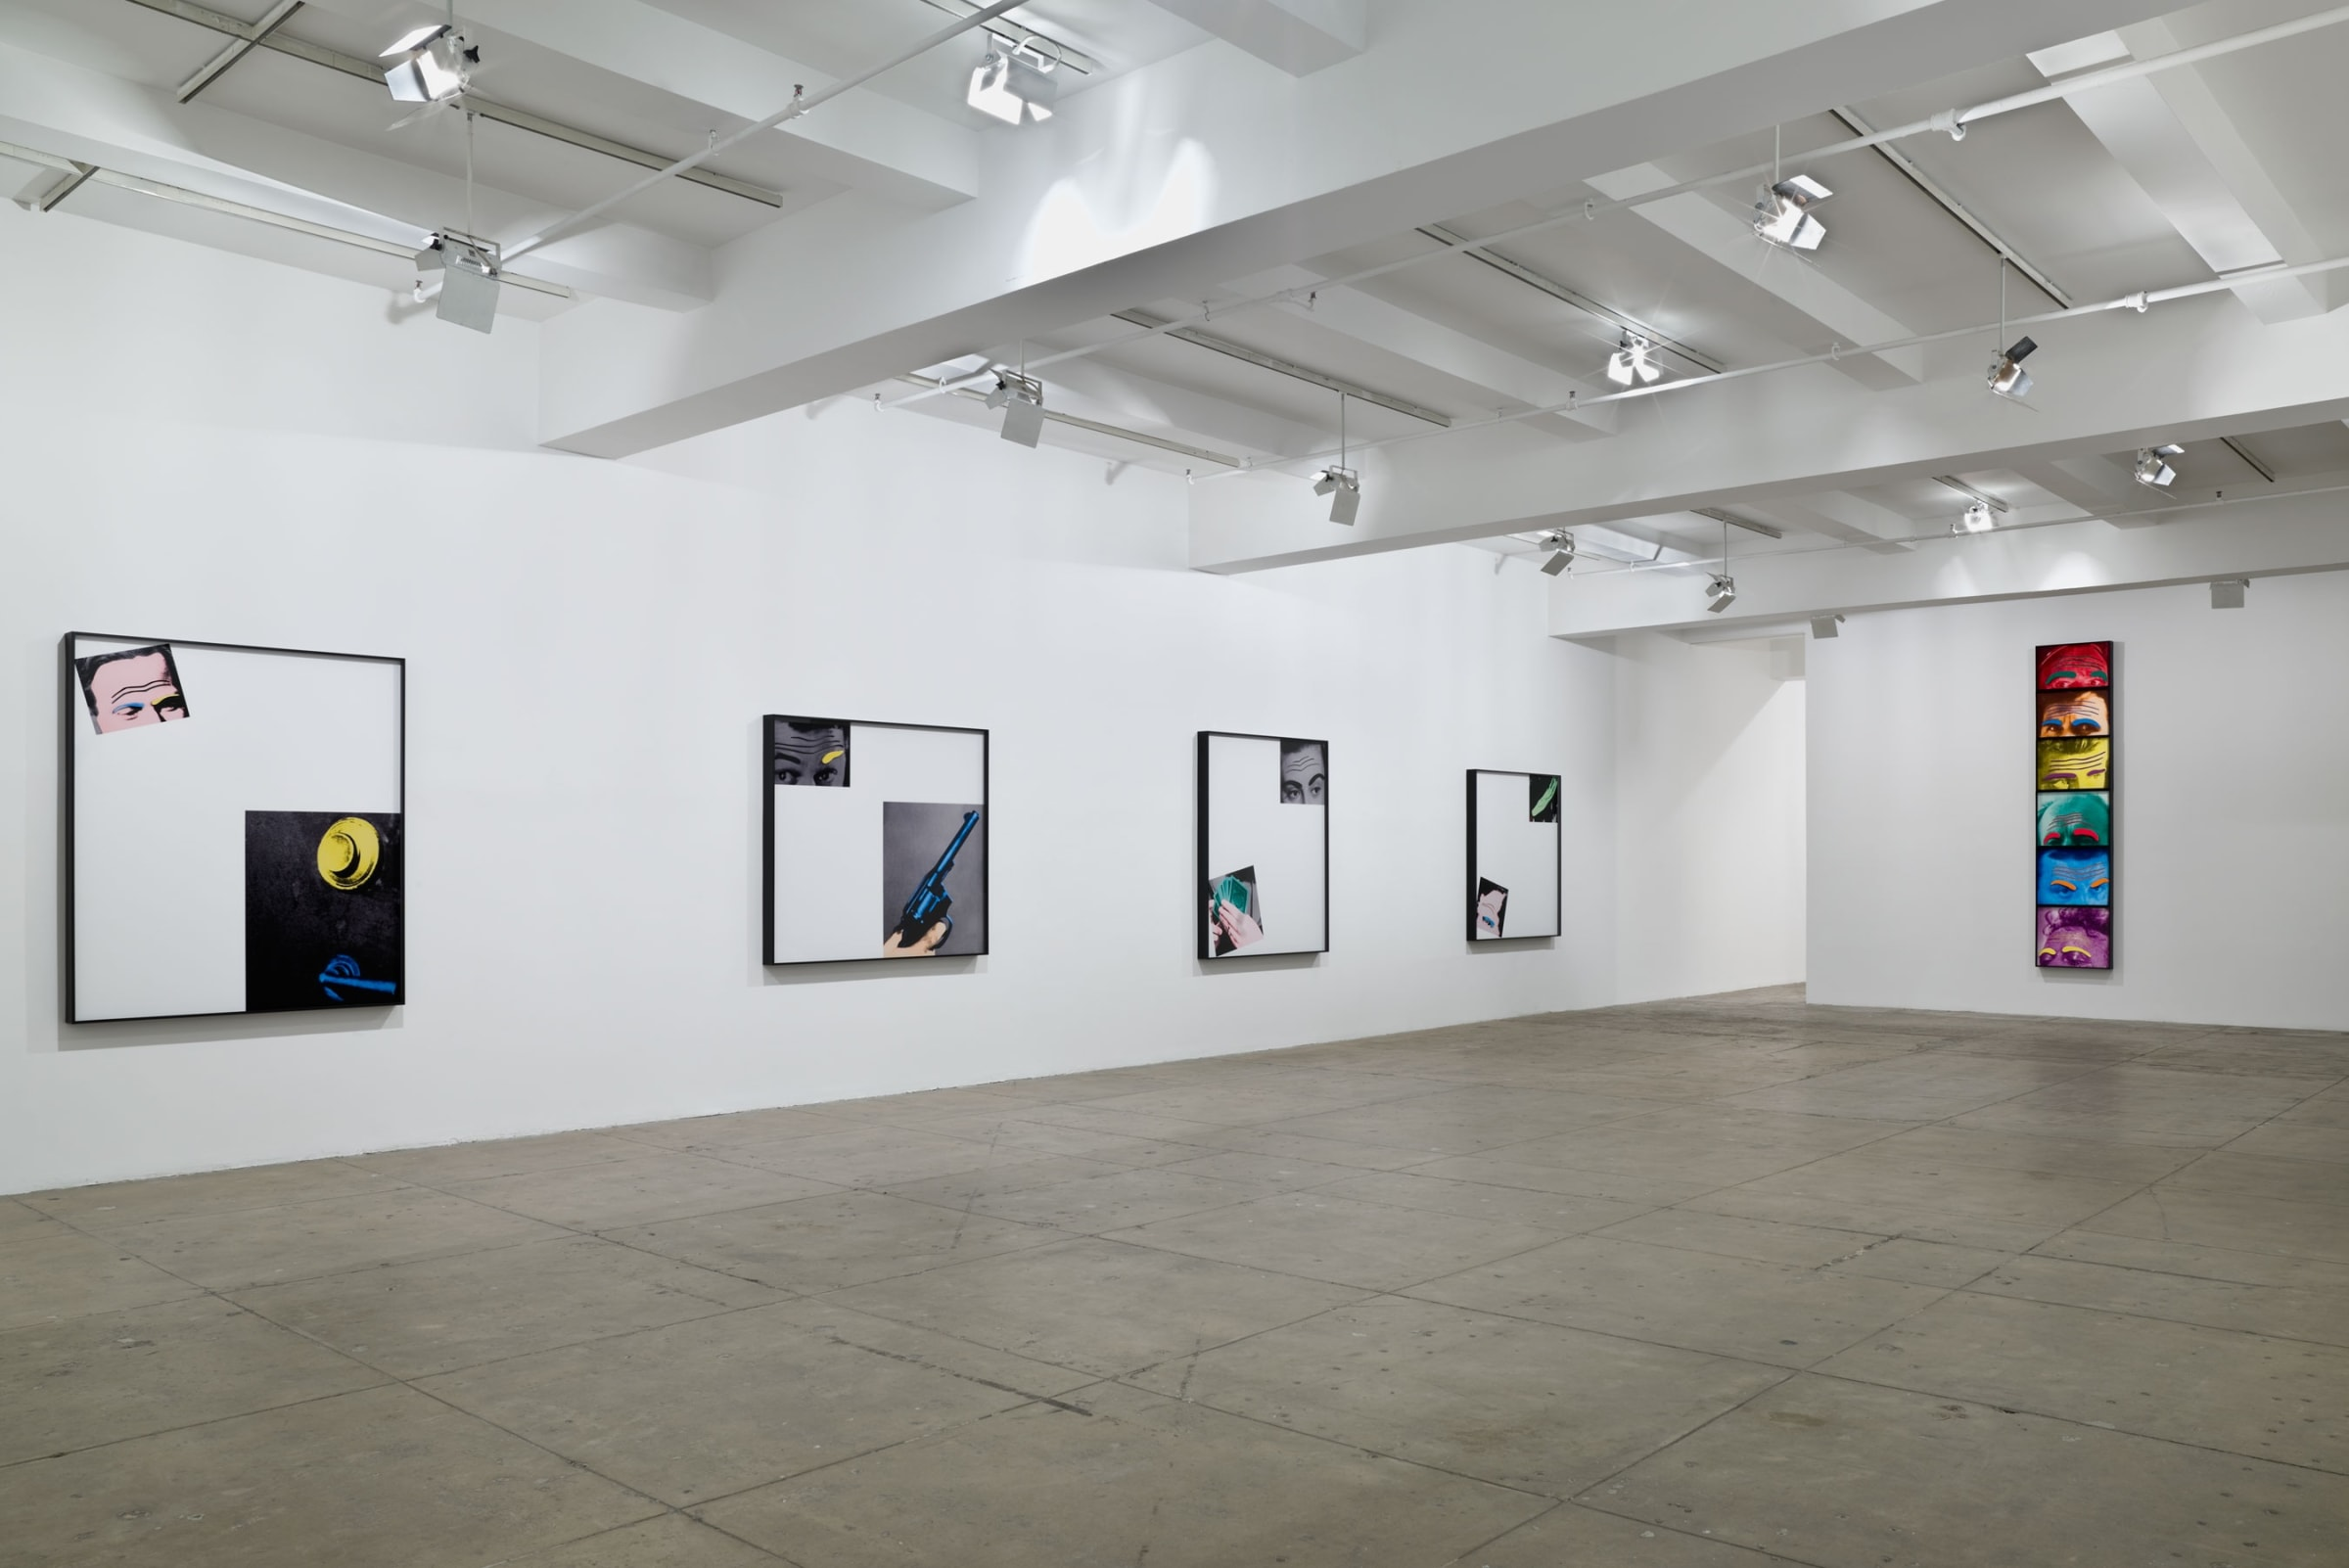 Four large framed photographs depict collage-like diptychs on the left wall; six framed images of foreheads colored like the rainbow are stacked on the right wall.